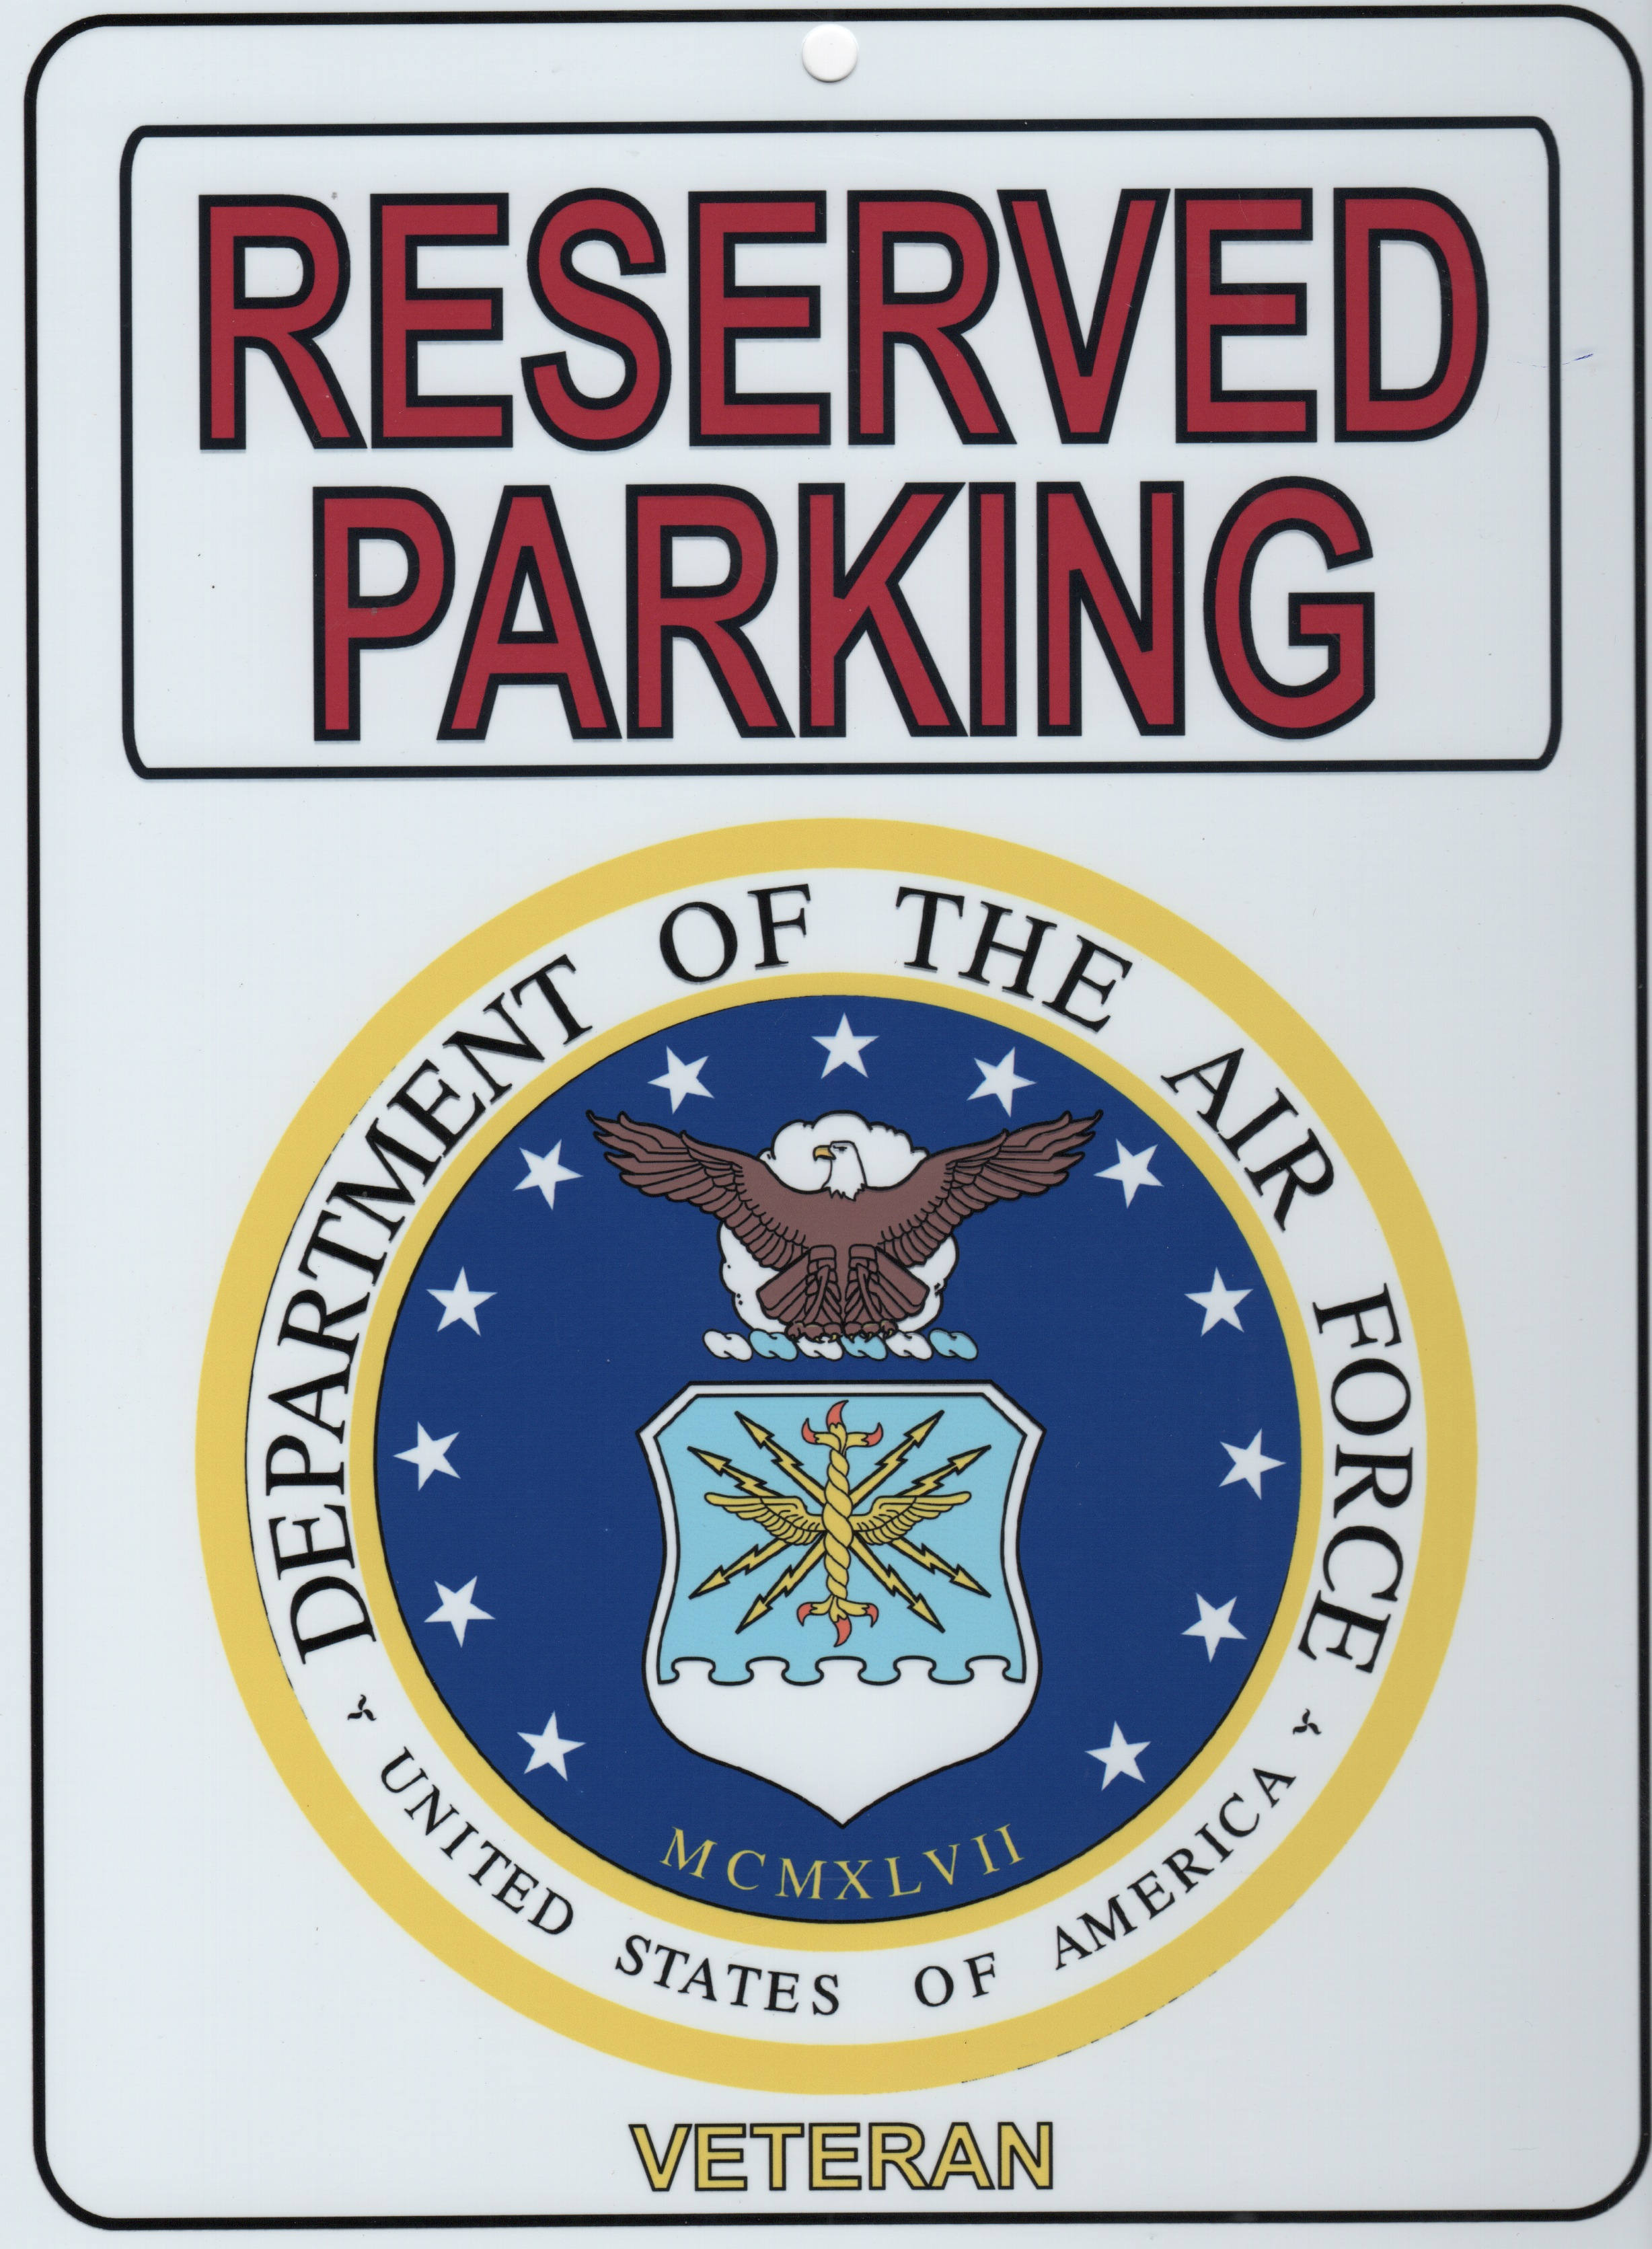 USAF VETERAN 'Parking Placard'